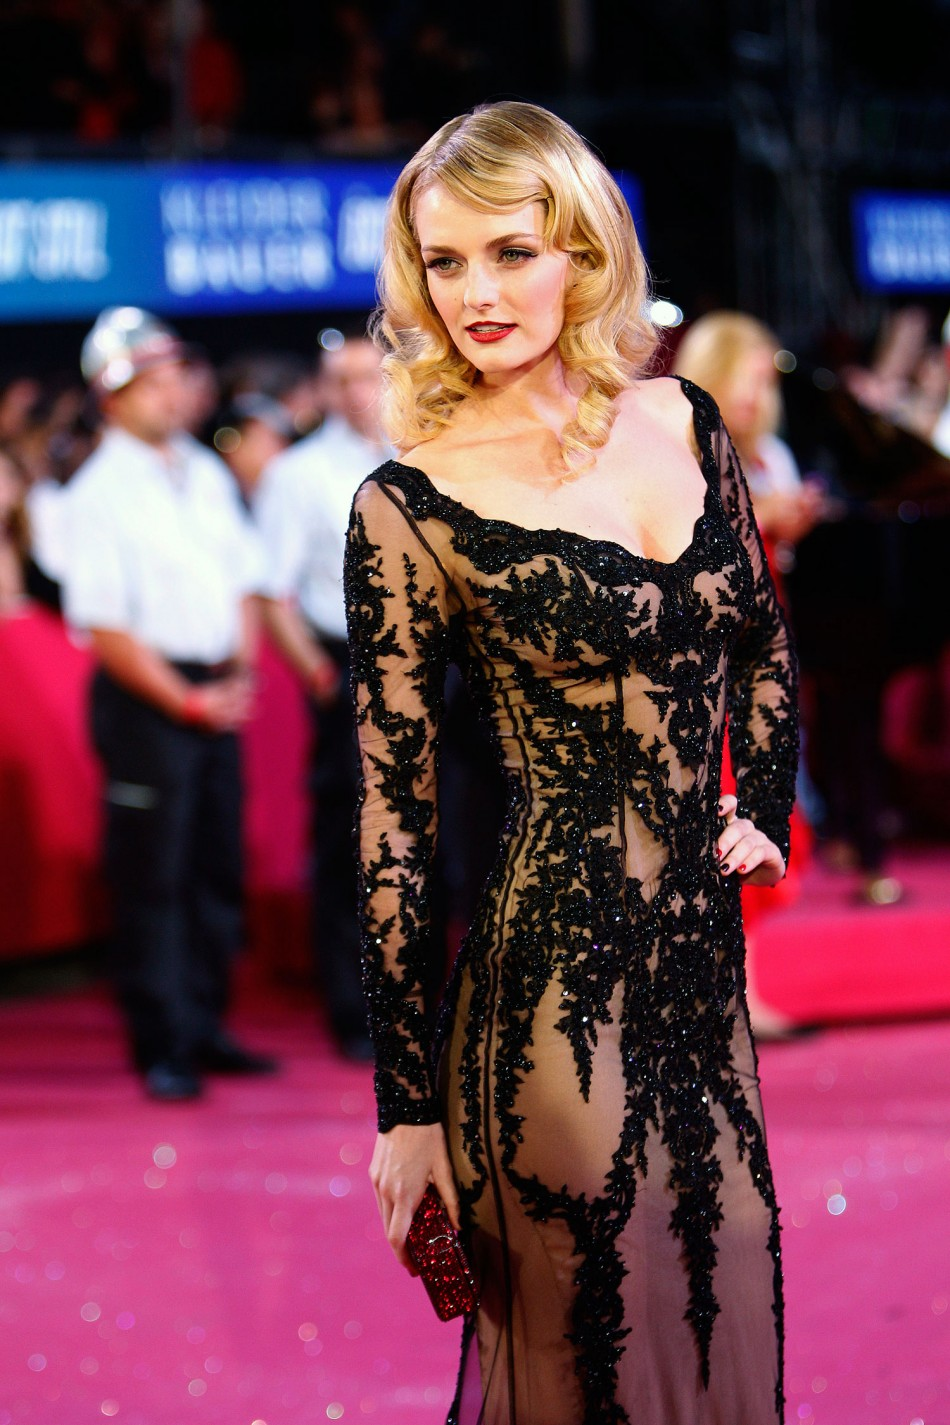 20th Vienna Life Ball: Celebrities, Models and Participants